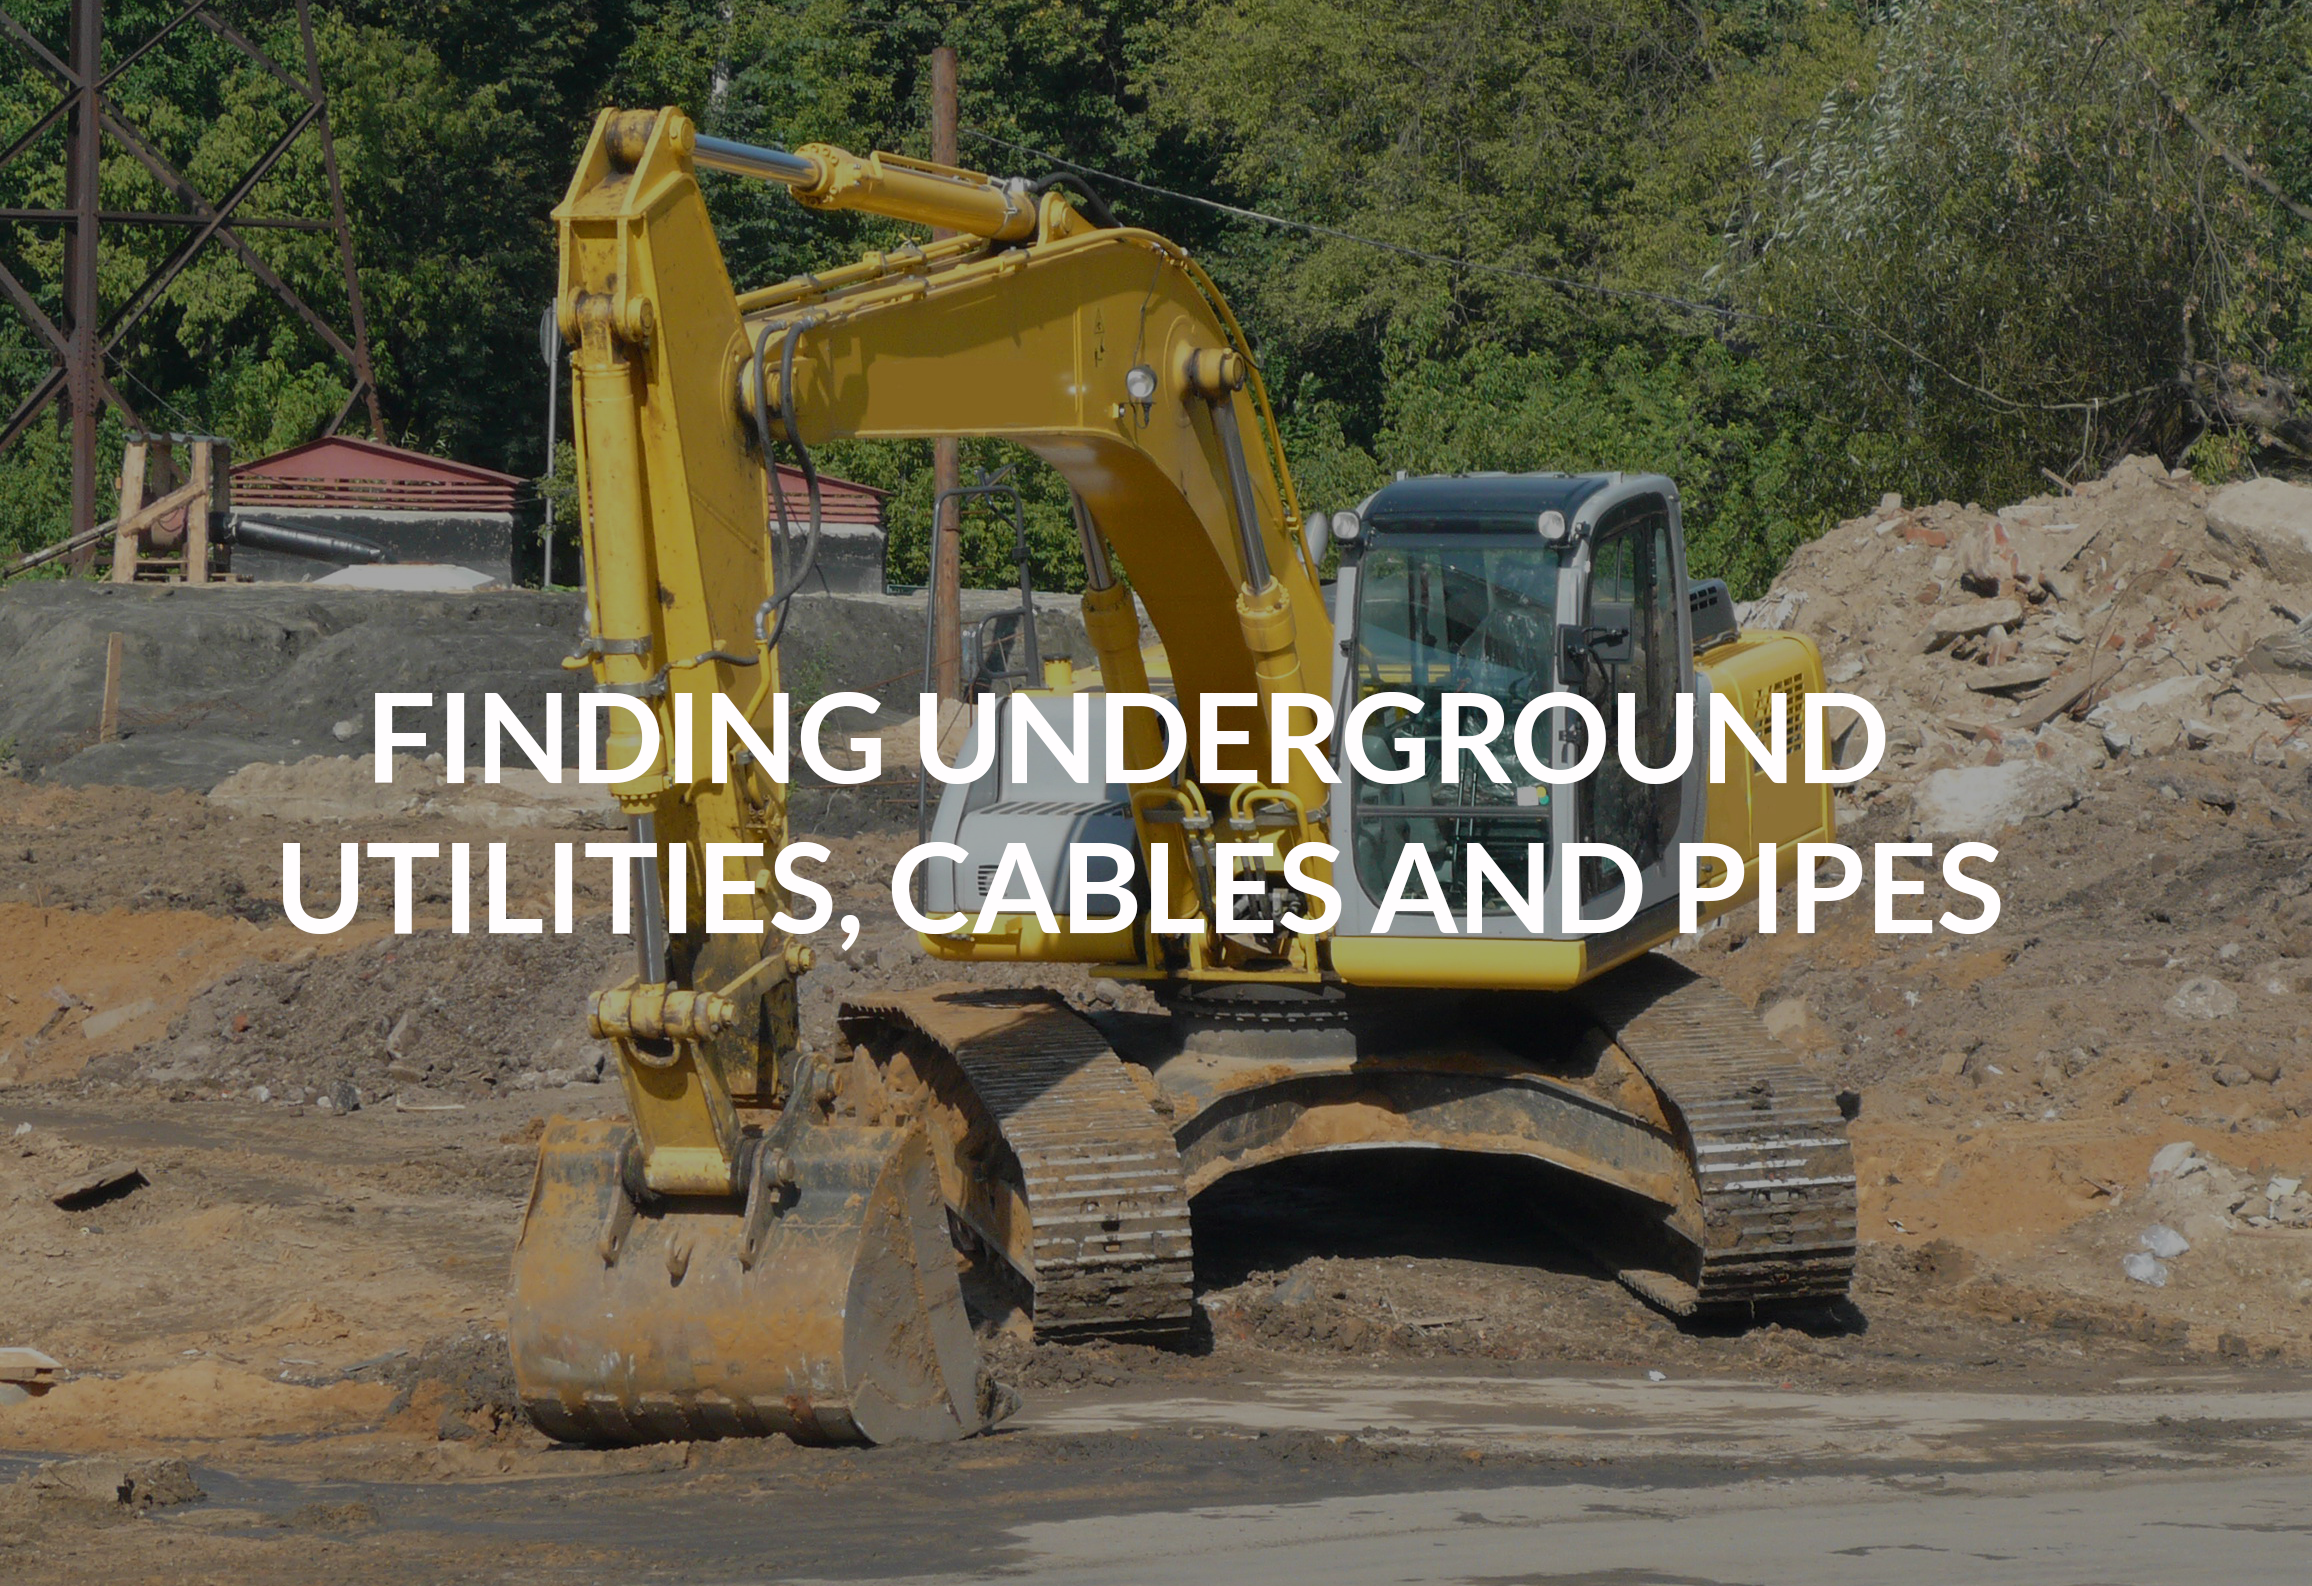 Utility Pipes And Cables : Underground utilities cables and pipes acs